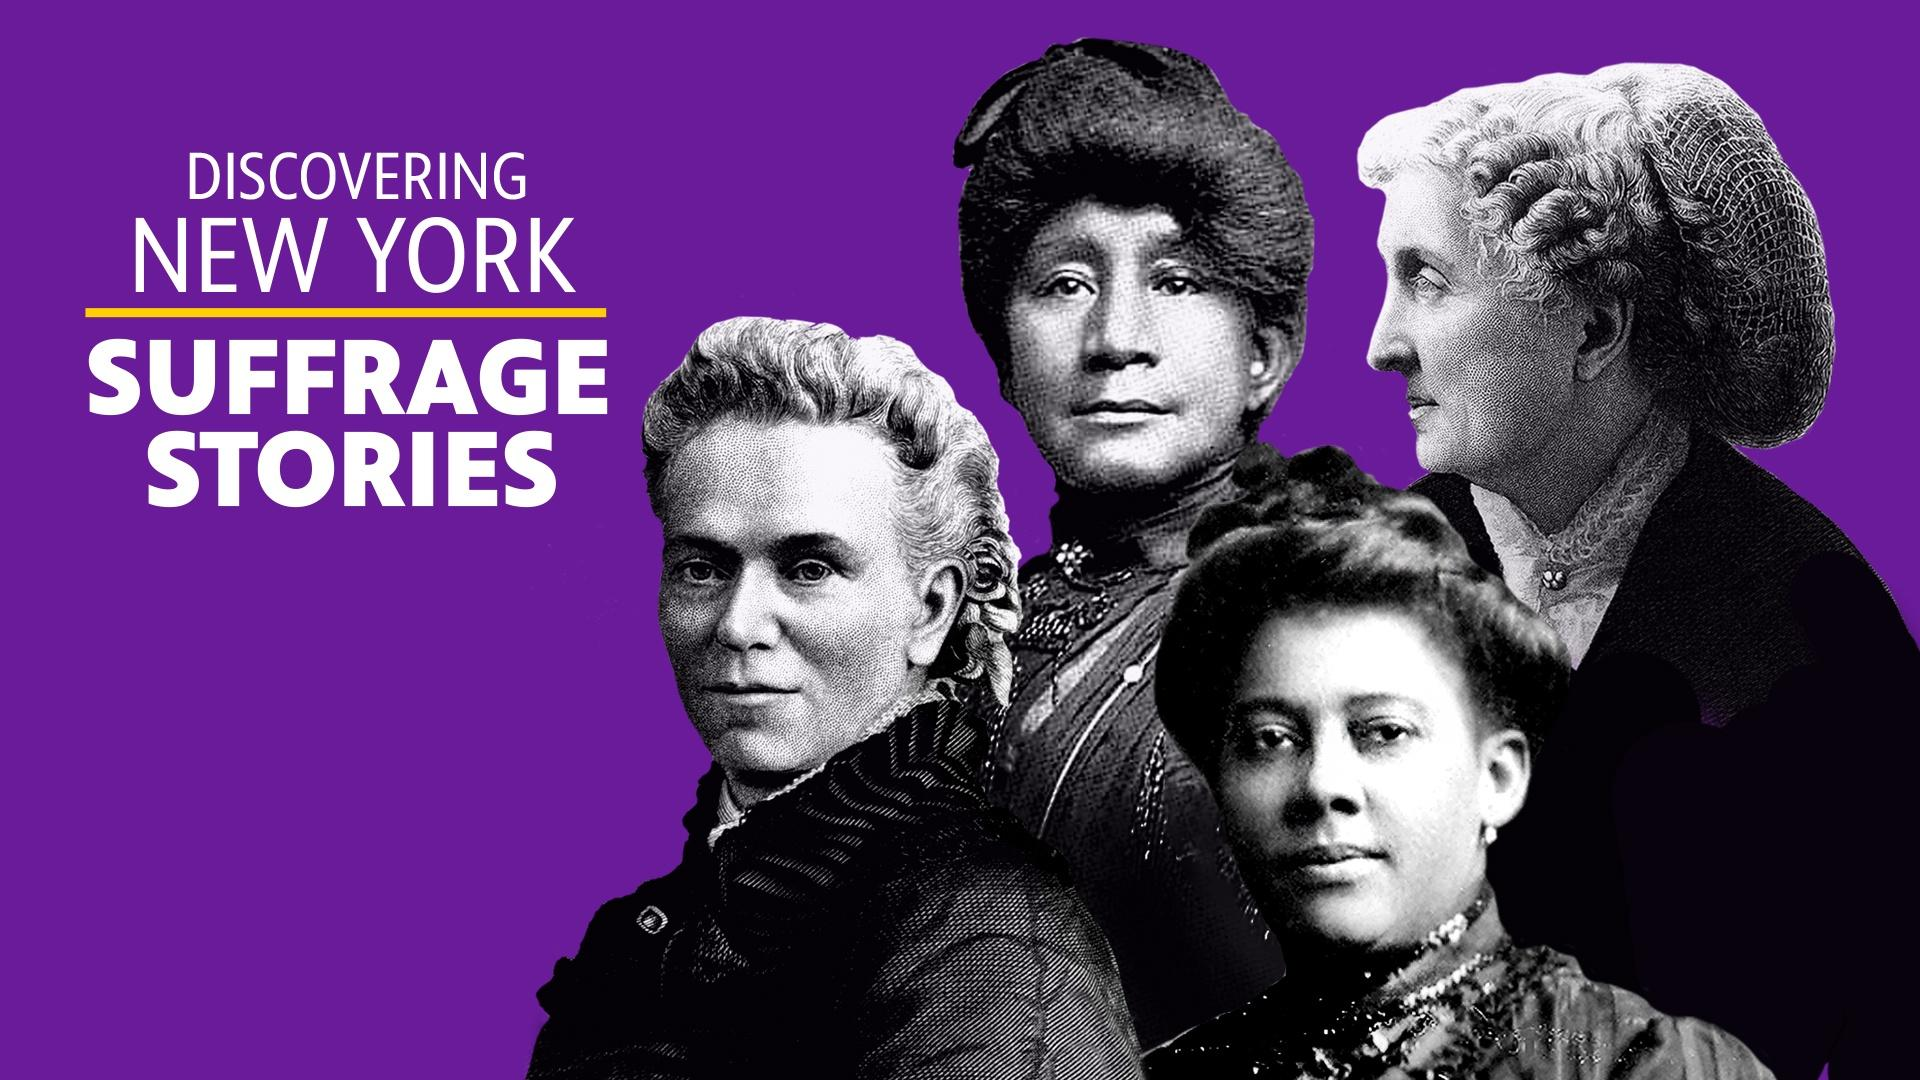 Discovering NY Suffrage Stories